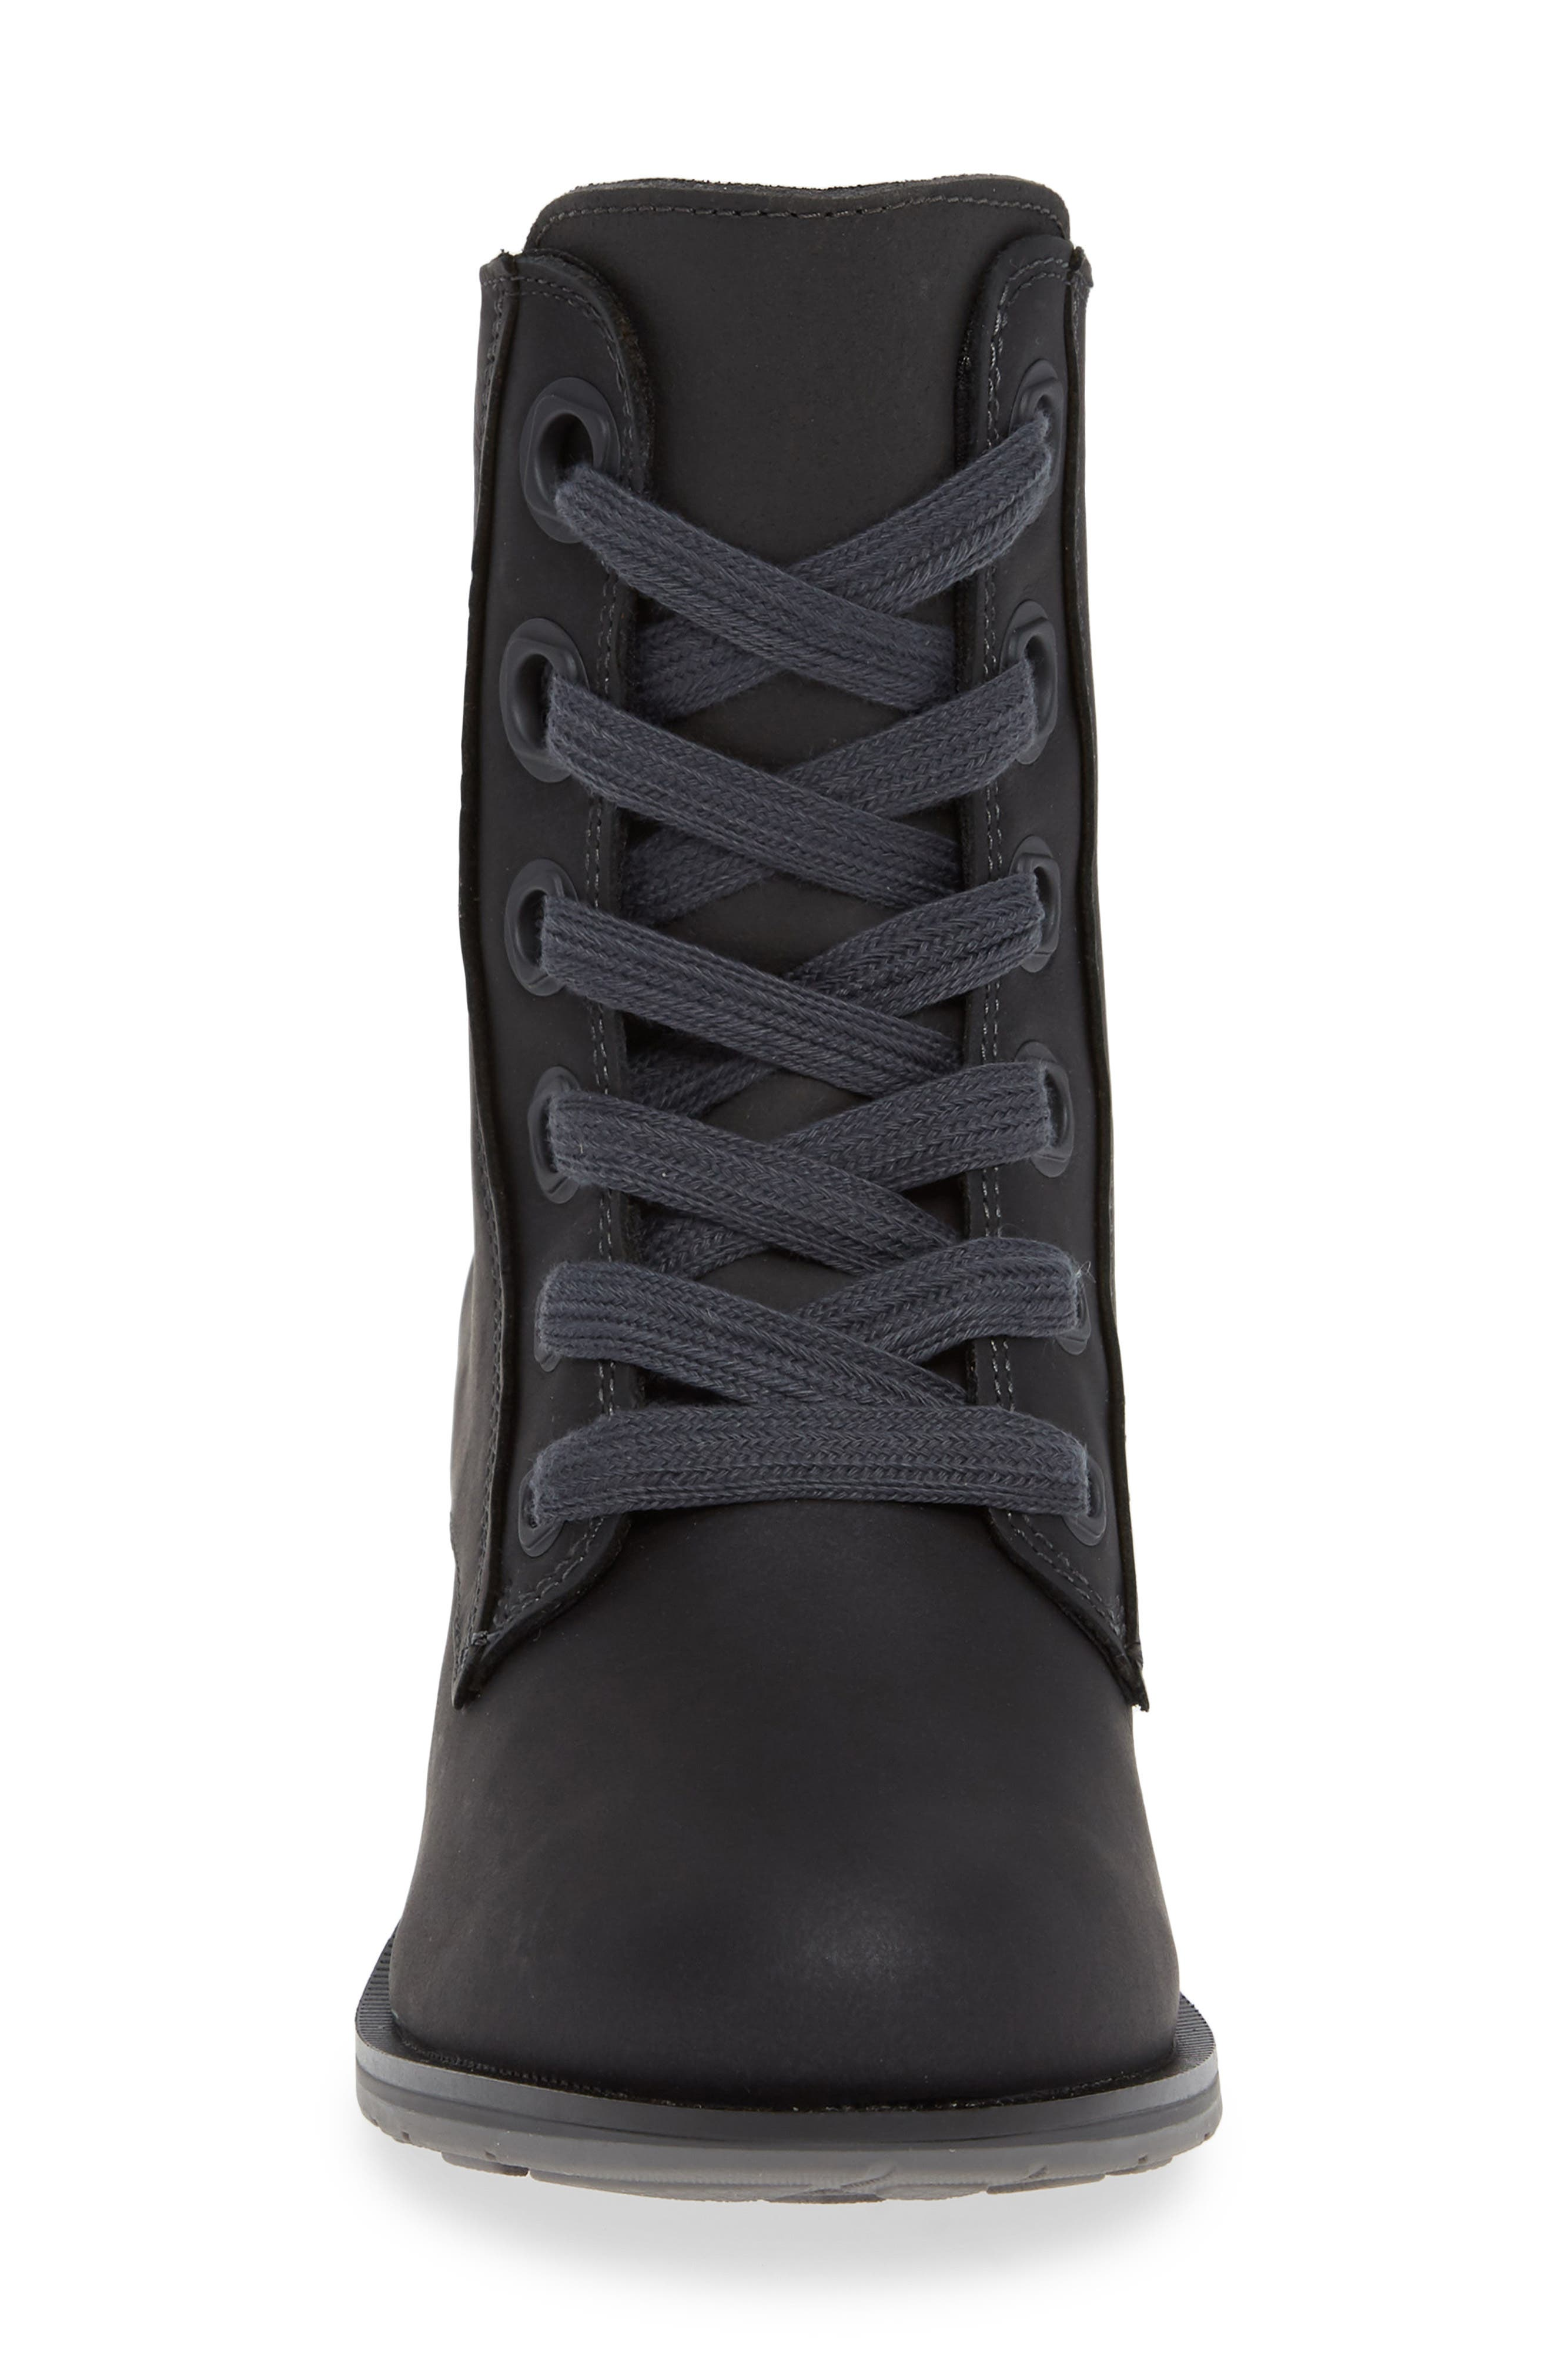 CHACO, Cataluna Waterproof Lace-Up Boot, Alternate thumbnail 4, color, BLACK LEATHER